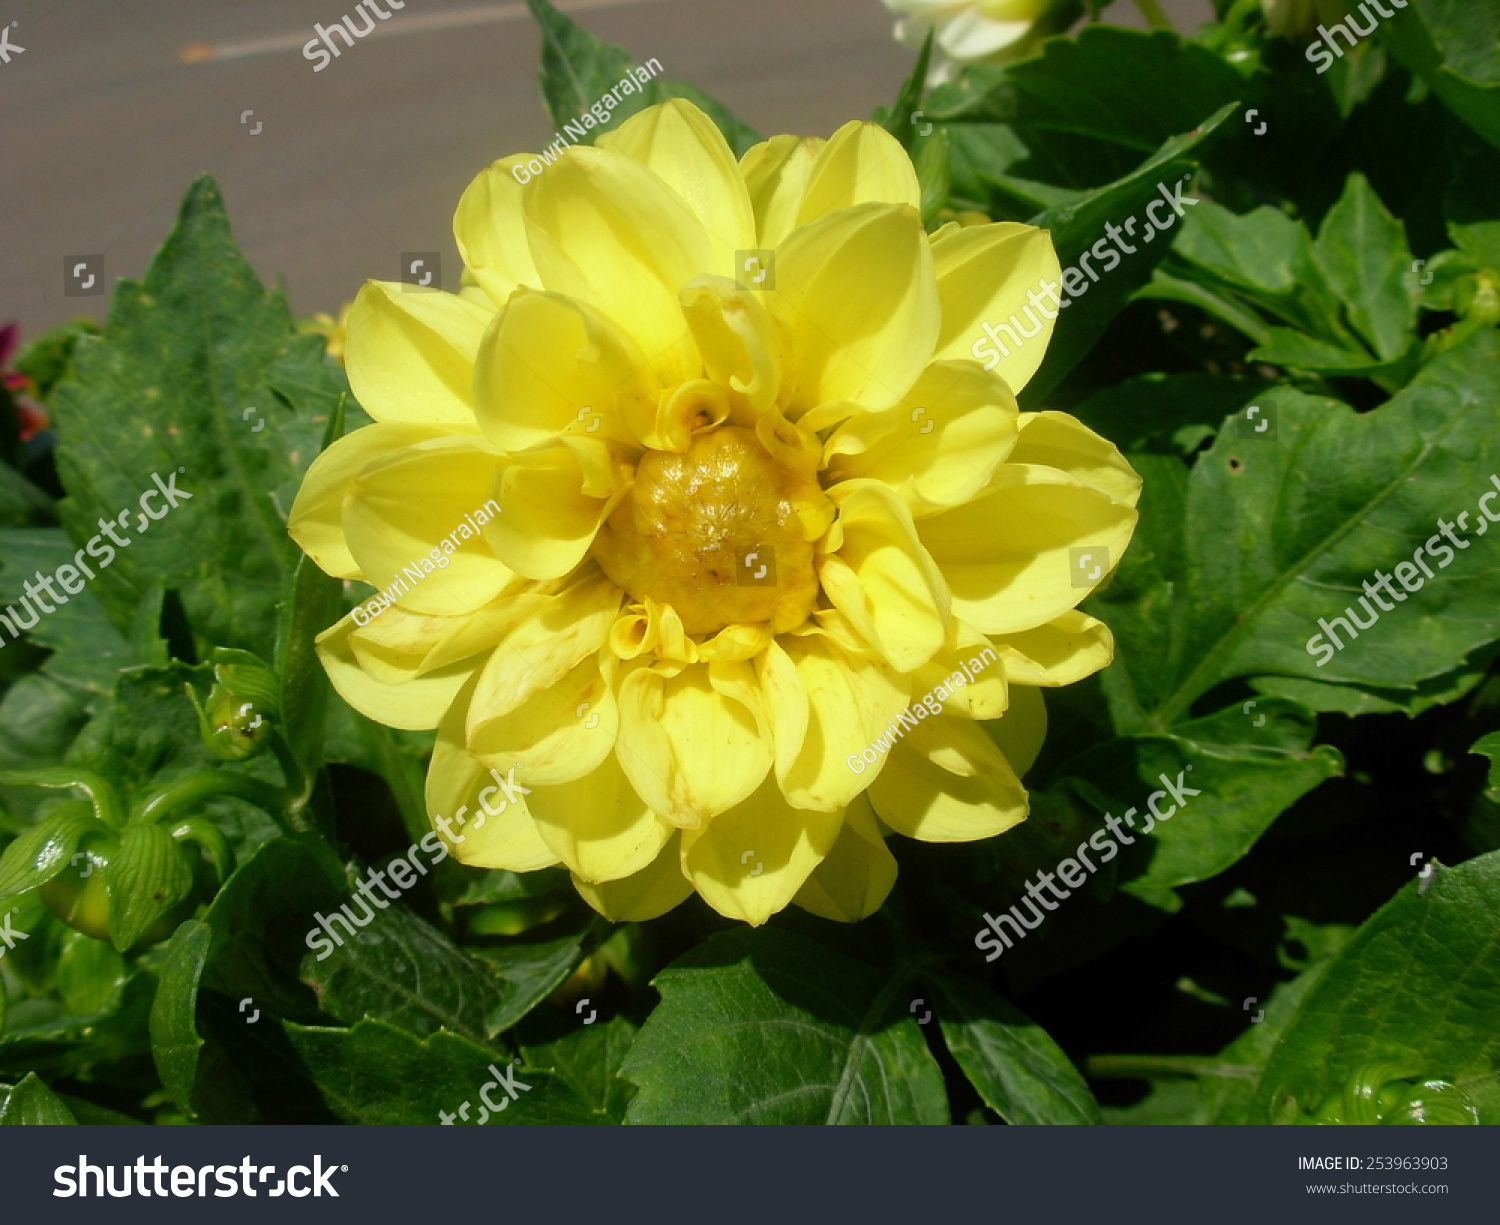 Yellow dahlia flower stock photo edit now 253963903 shutterstock yellow dahlia flower izmirmasajfo